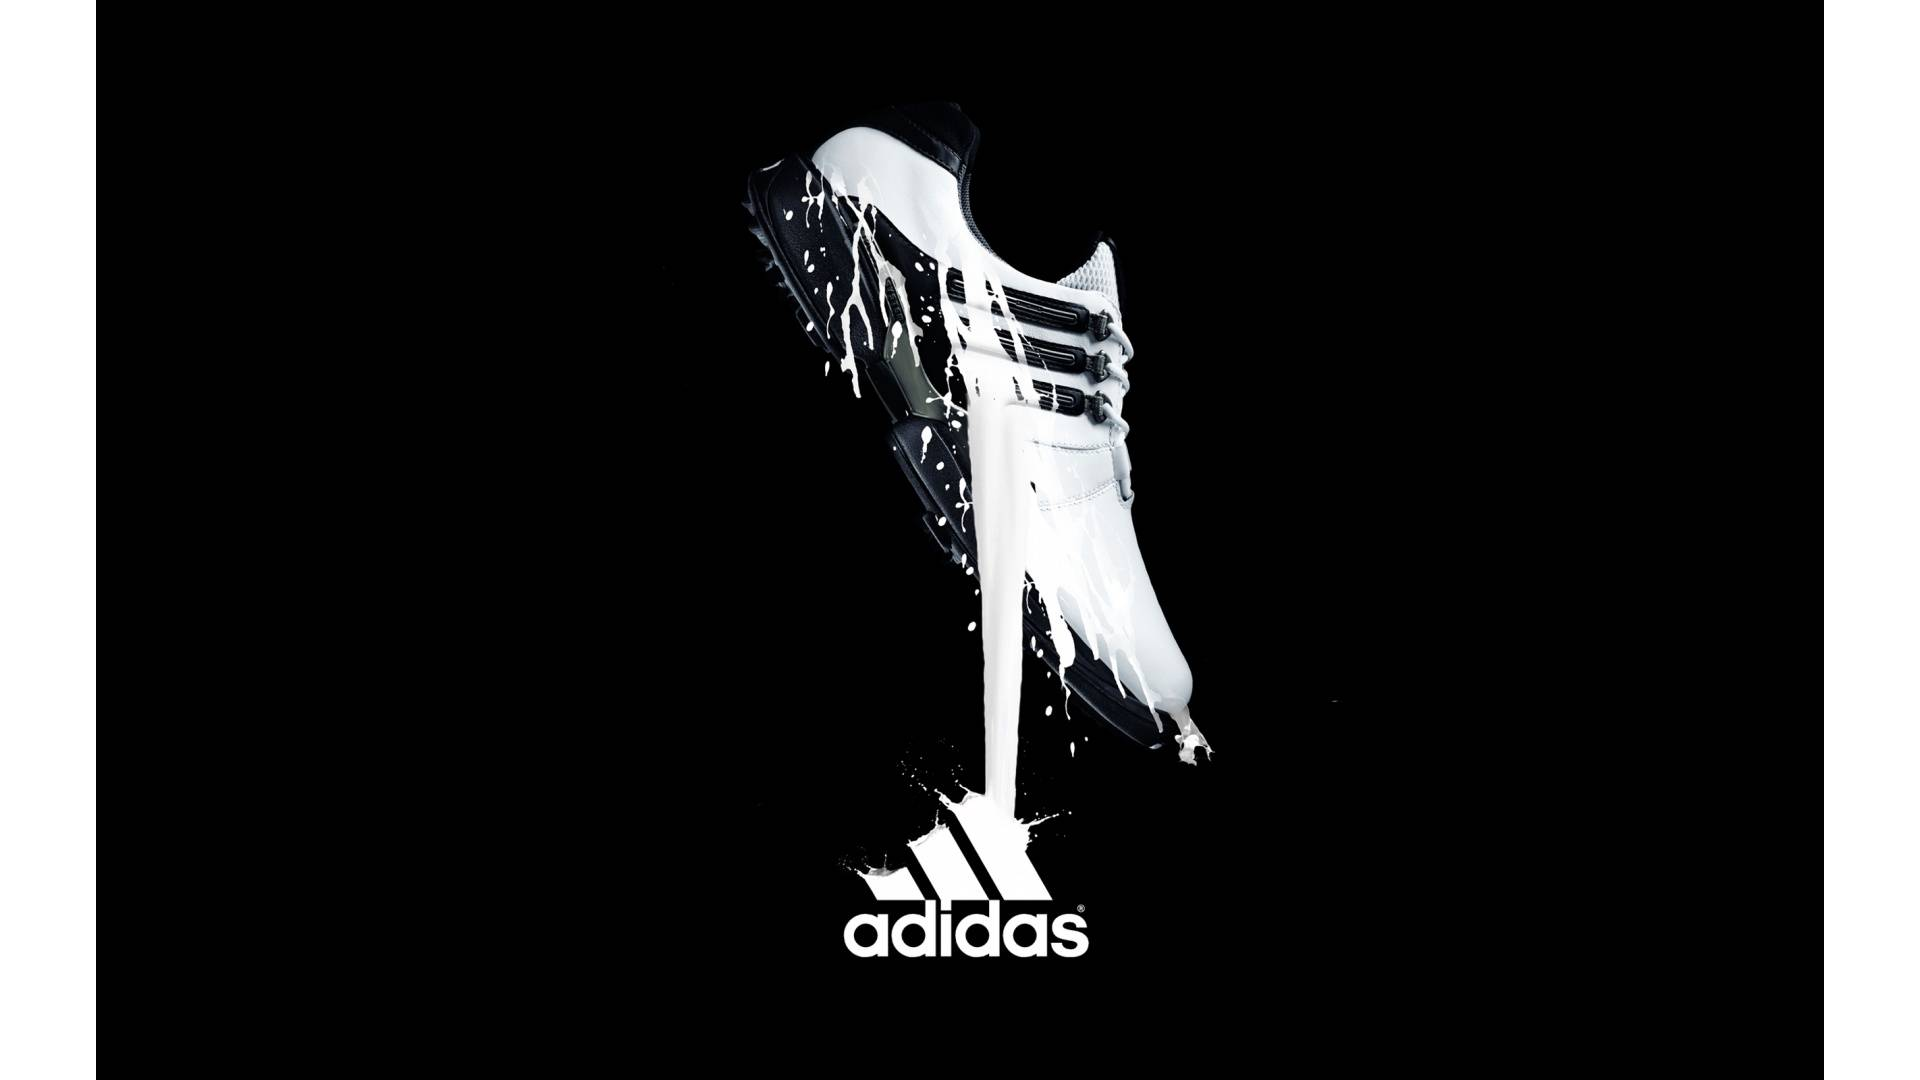 Wallpaper Logo Adidas Hq Pictures 13 HD Wallpapers | Hdwalljoy.